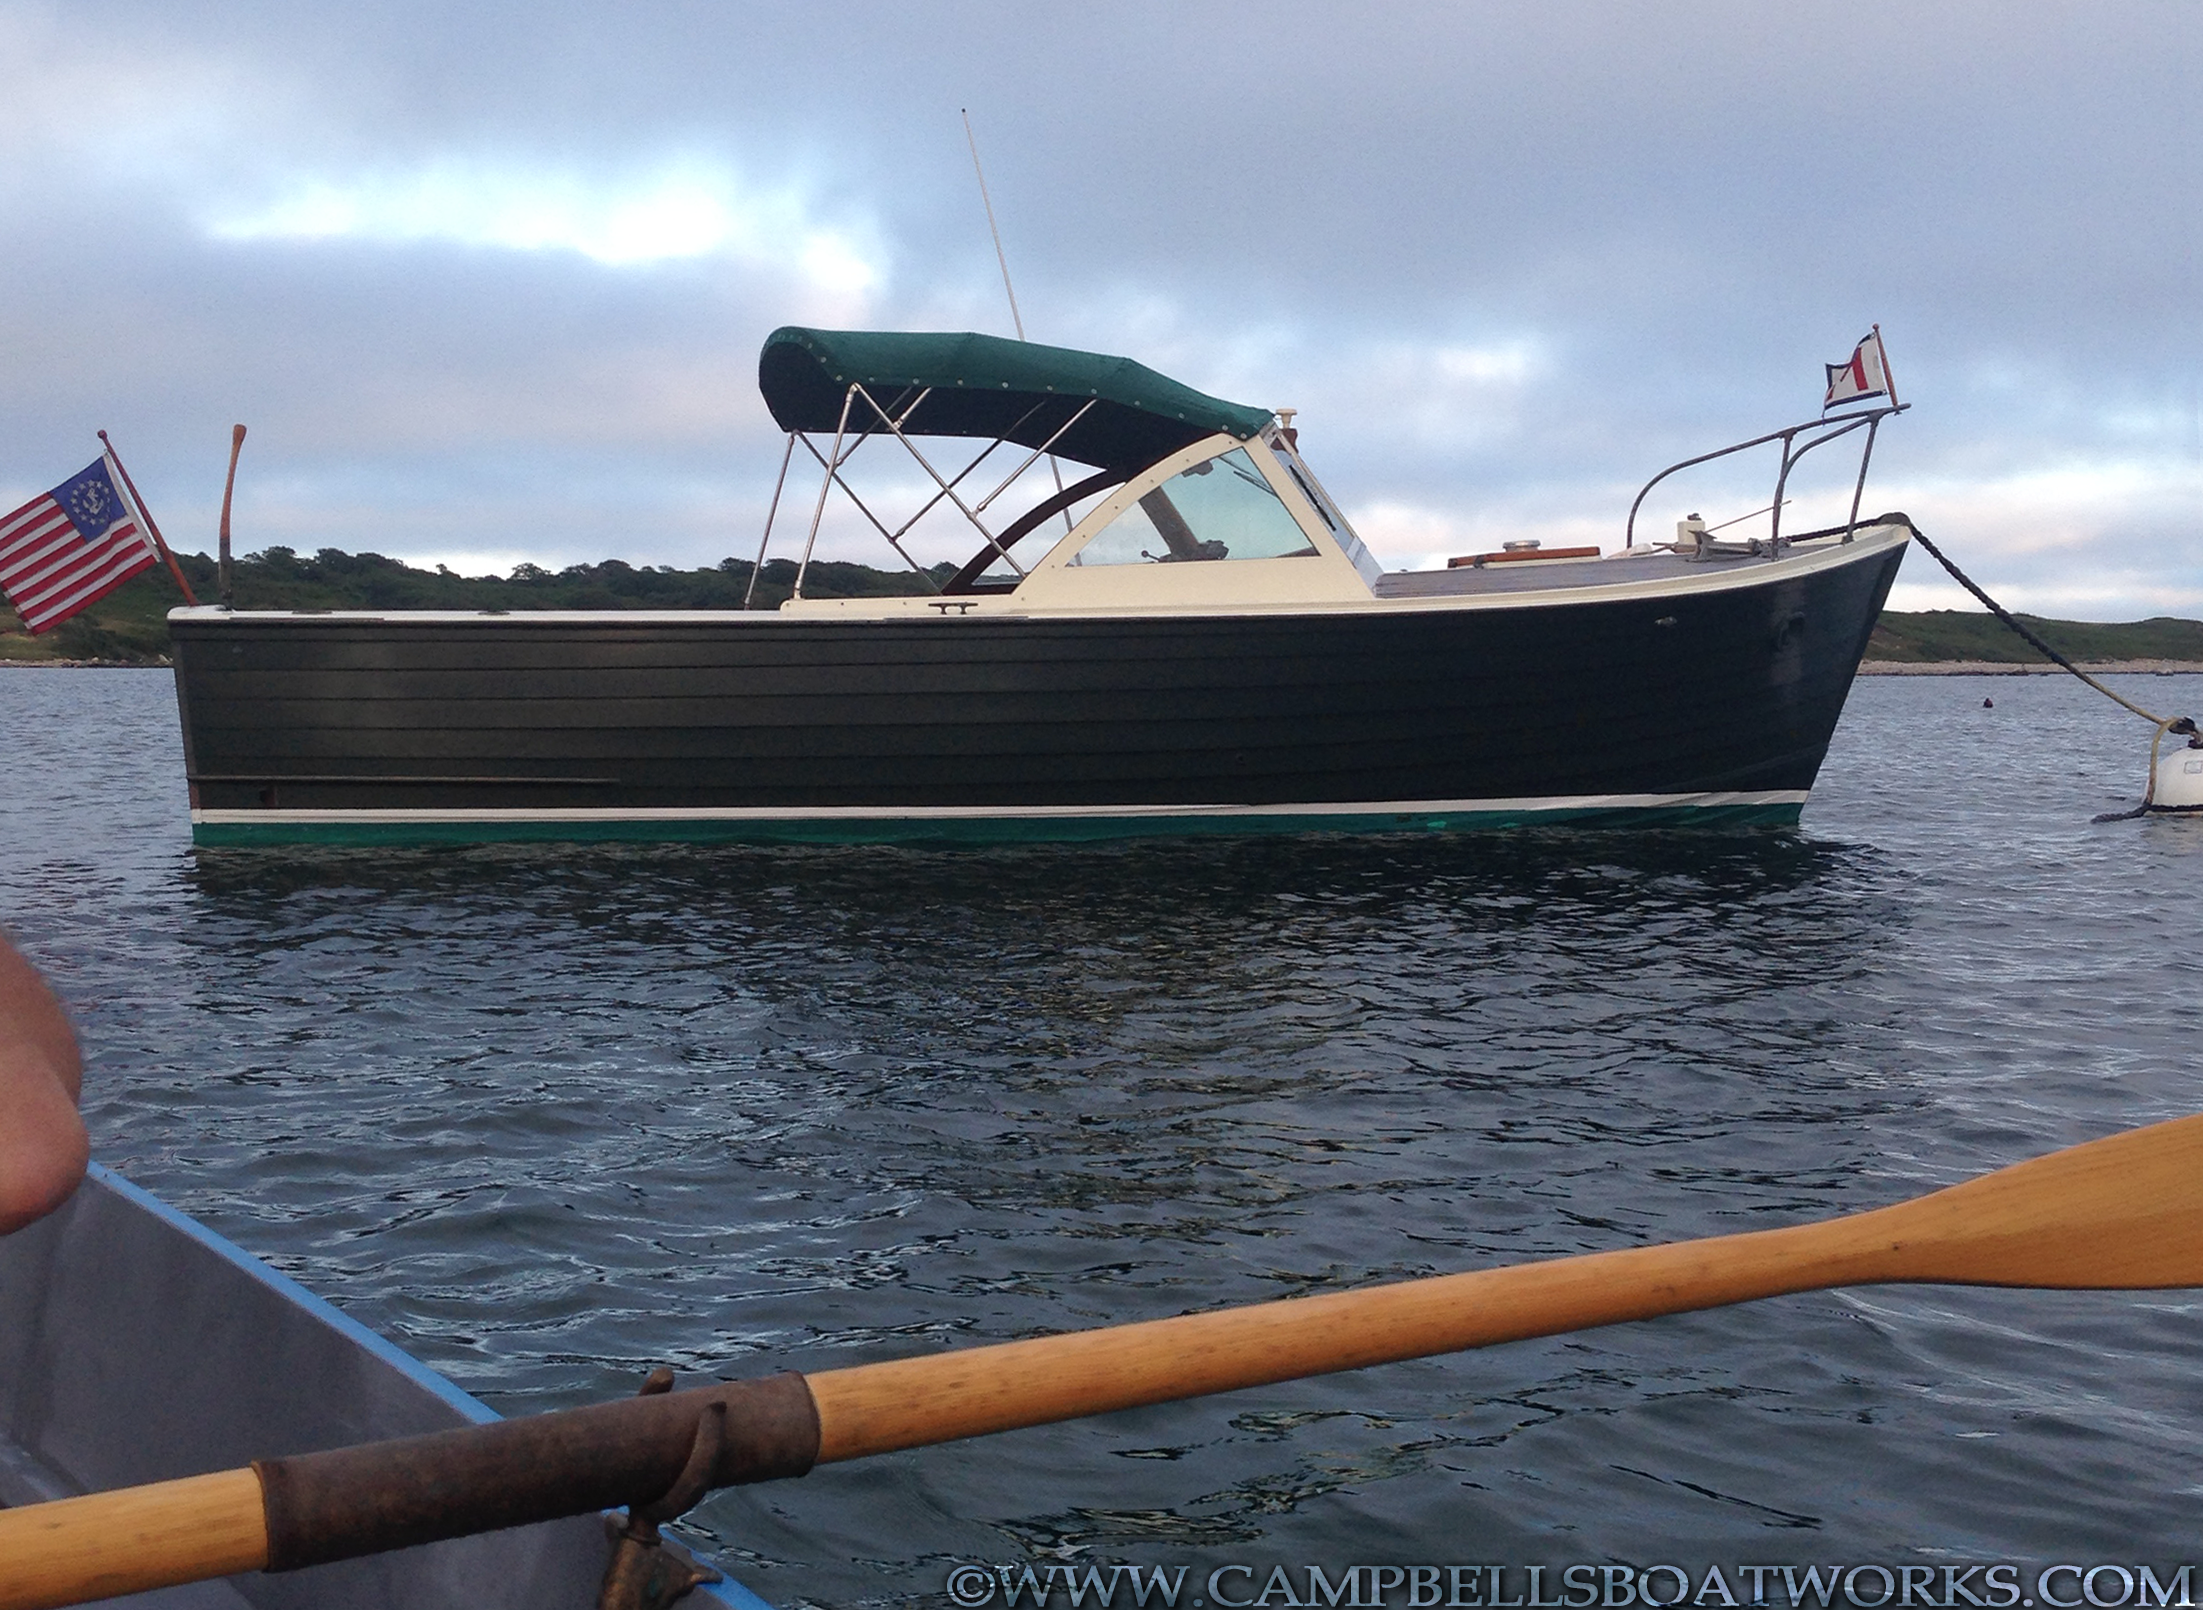 classic-wooden-inboard-power-boat-26-mackenzie-cuttyhunk-for-sale.png